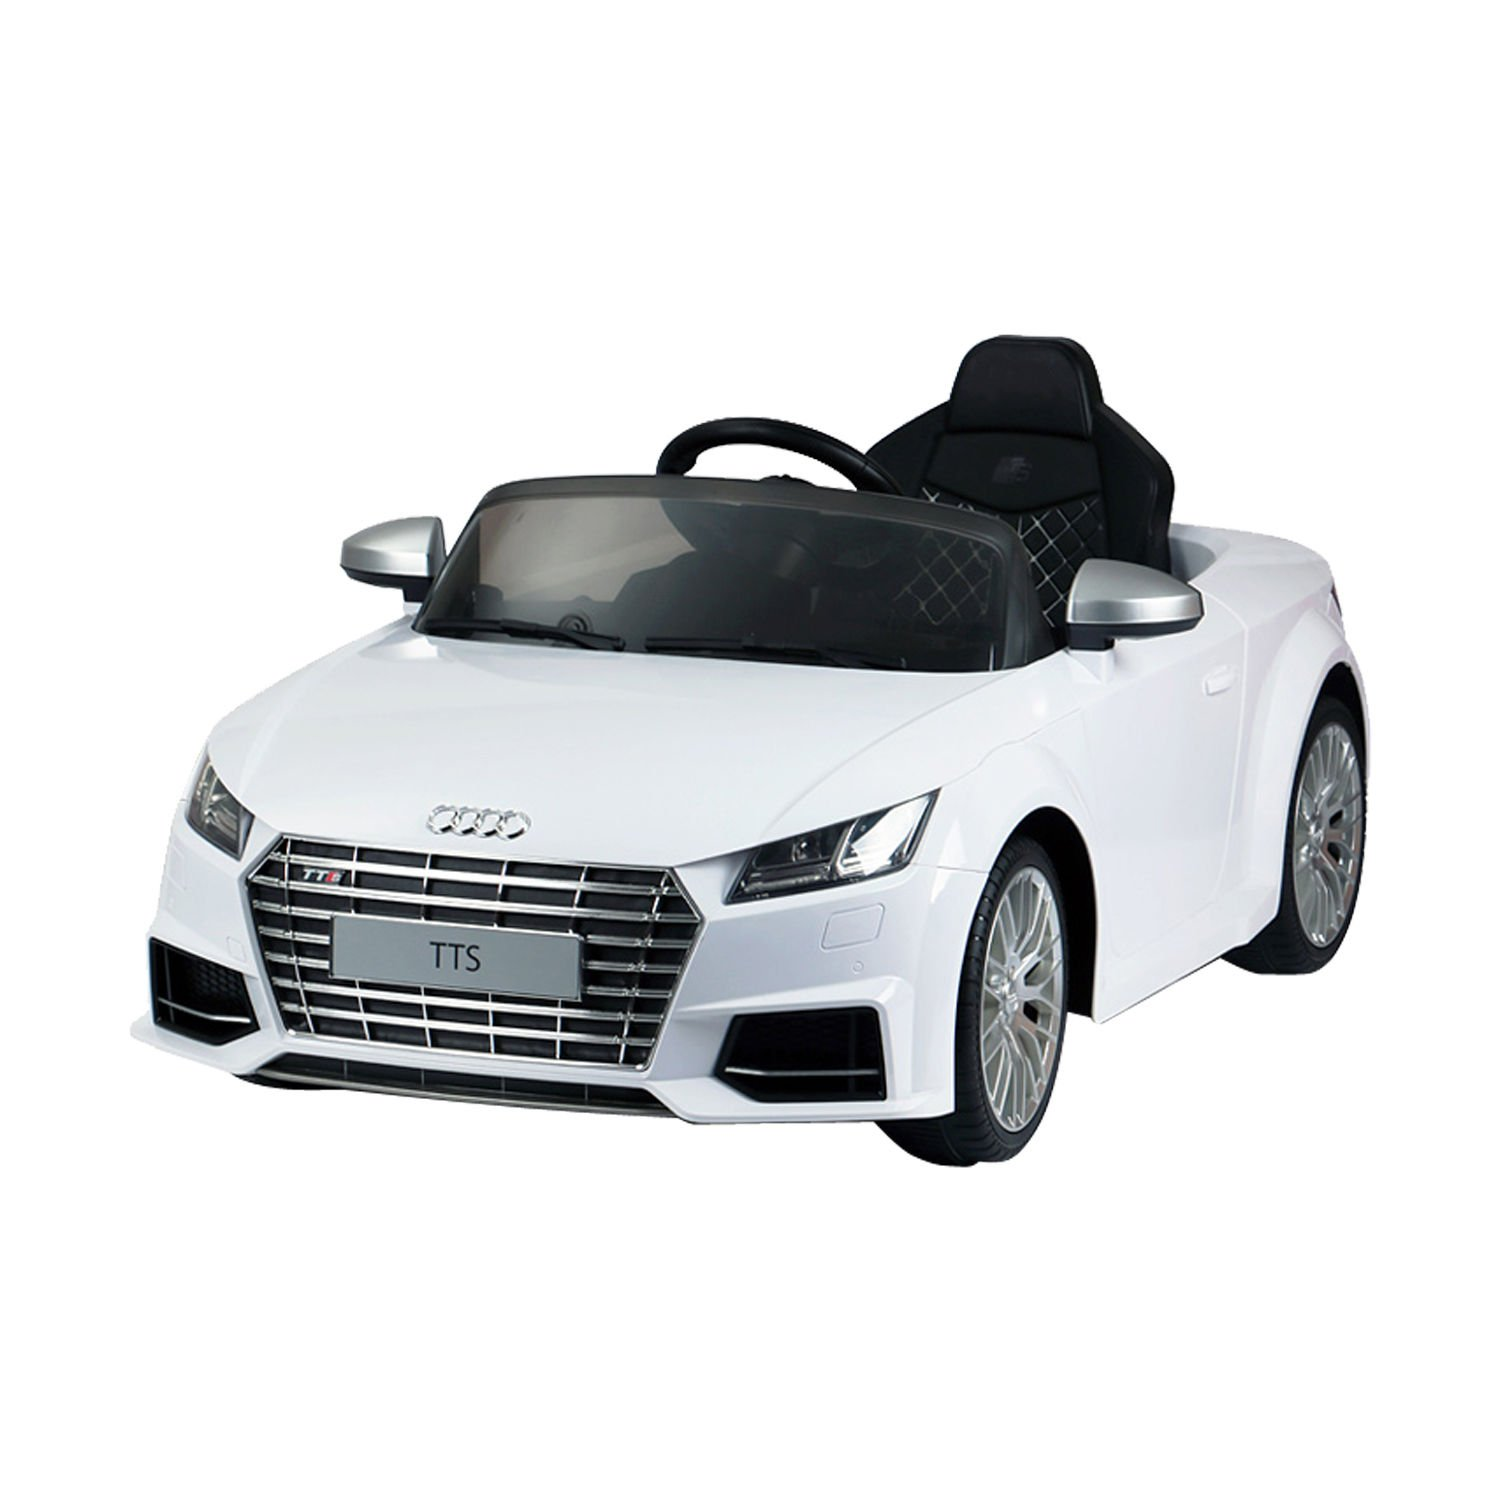 Amazoncom Audi V Kids Electric RideOn Car With Remote Control - Audi electric toy car